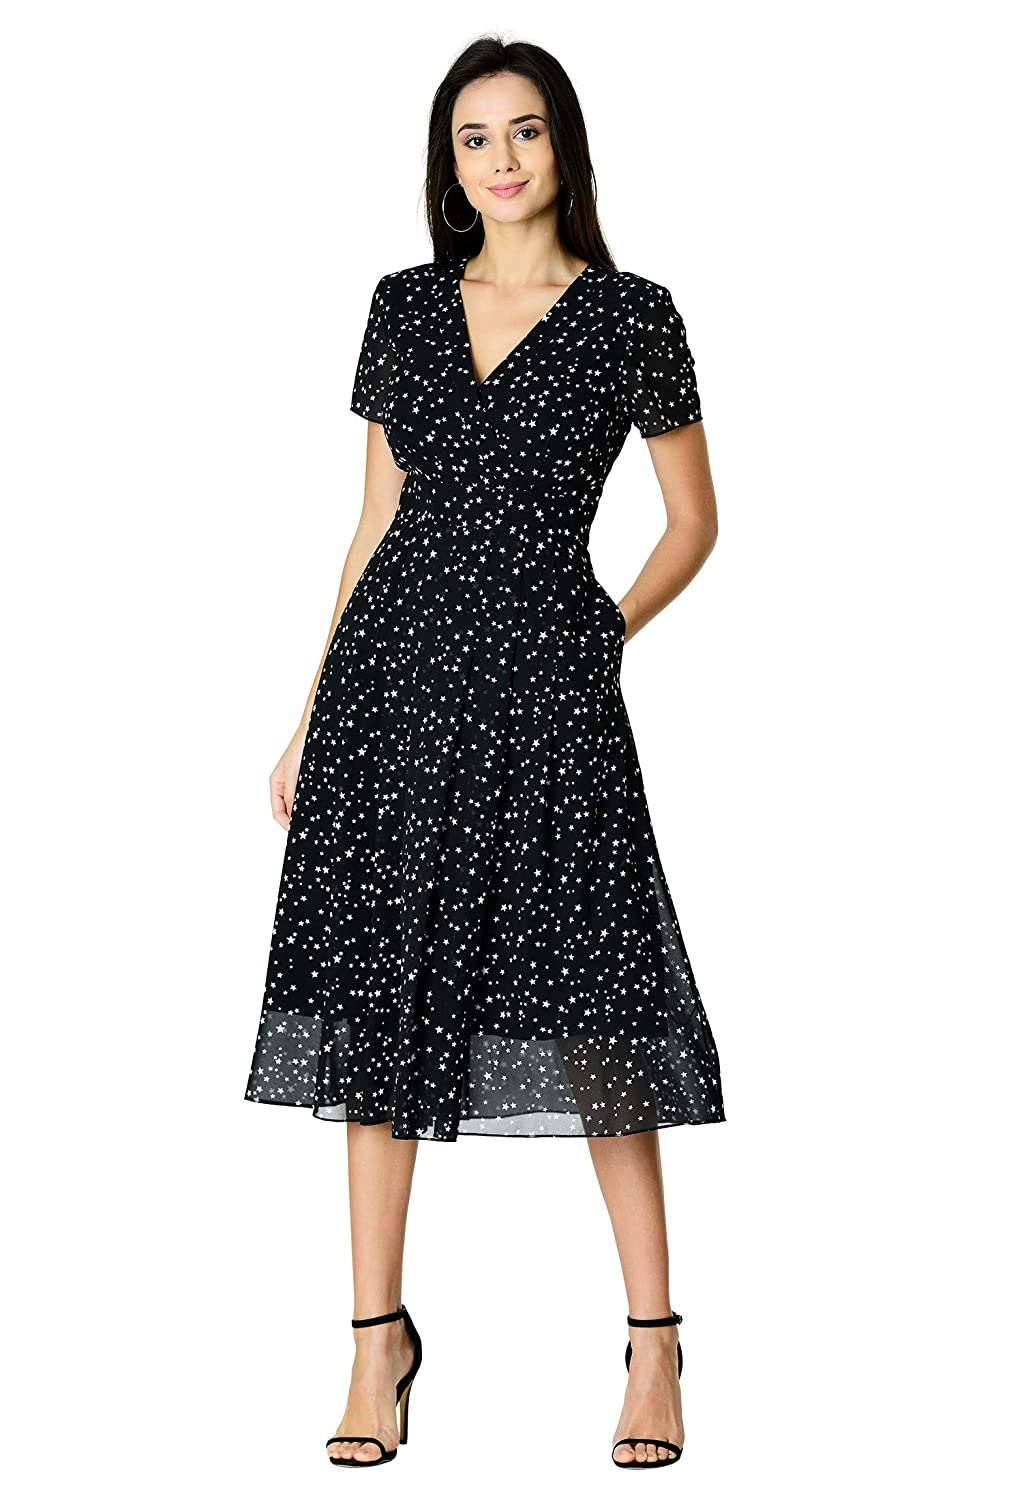 1940s Plus Size Fashion: Style Advice from 1940s to Today eShakti FX Surplice Star Print Georgette Dress $69.95 AT vintagedancer.com